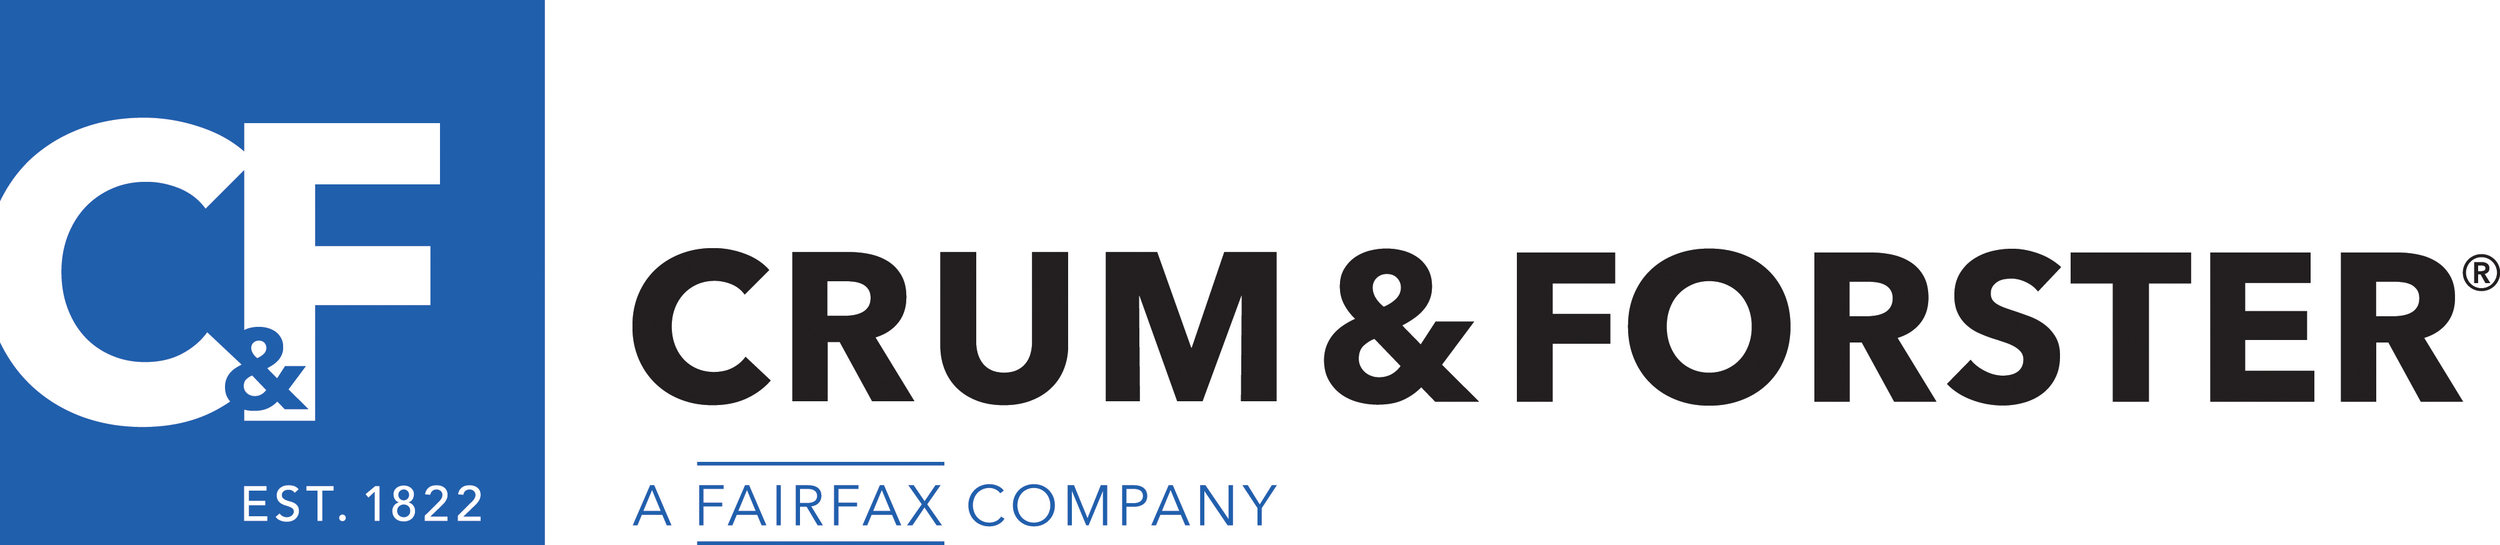 crum_foster logo.png